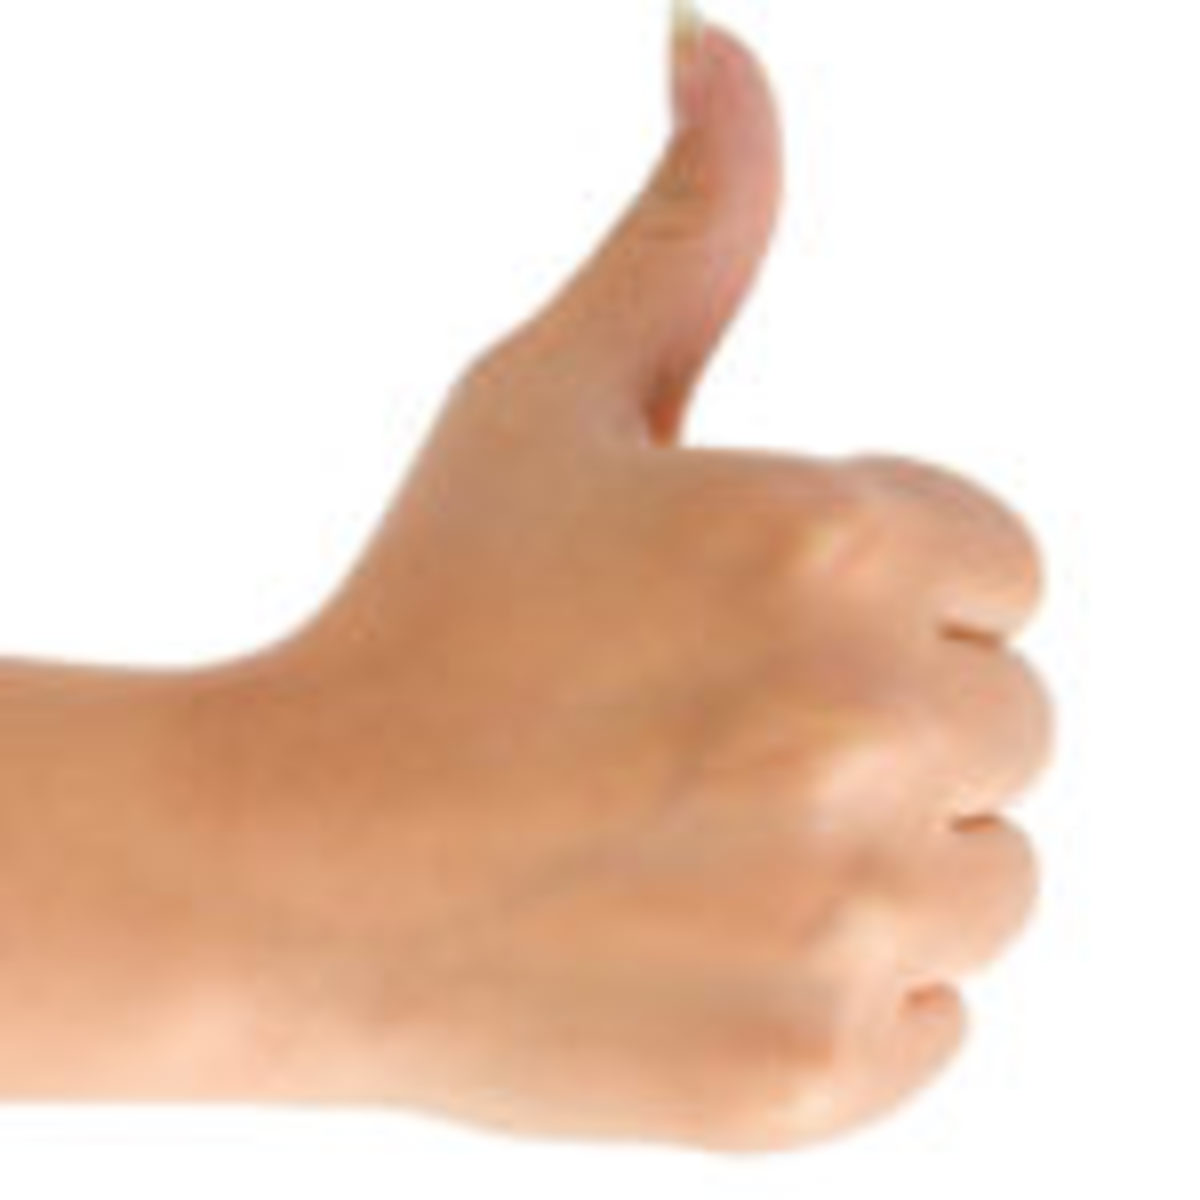 Thumbs Up! Your idea includes surprise